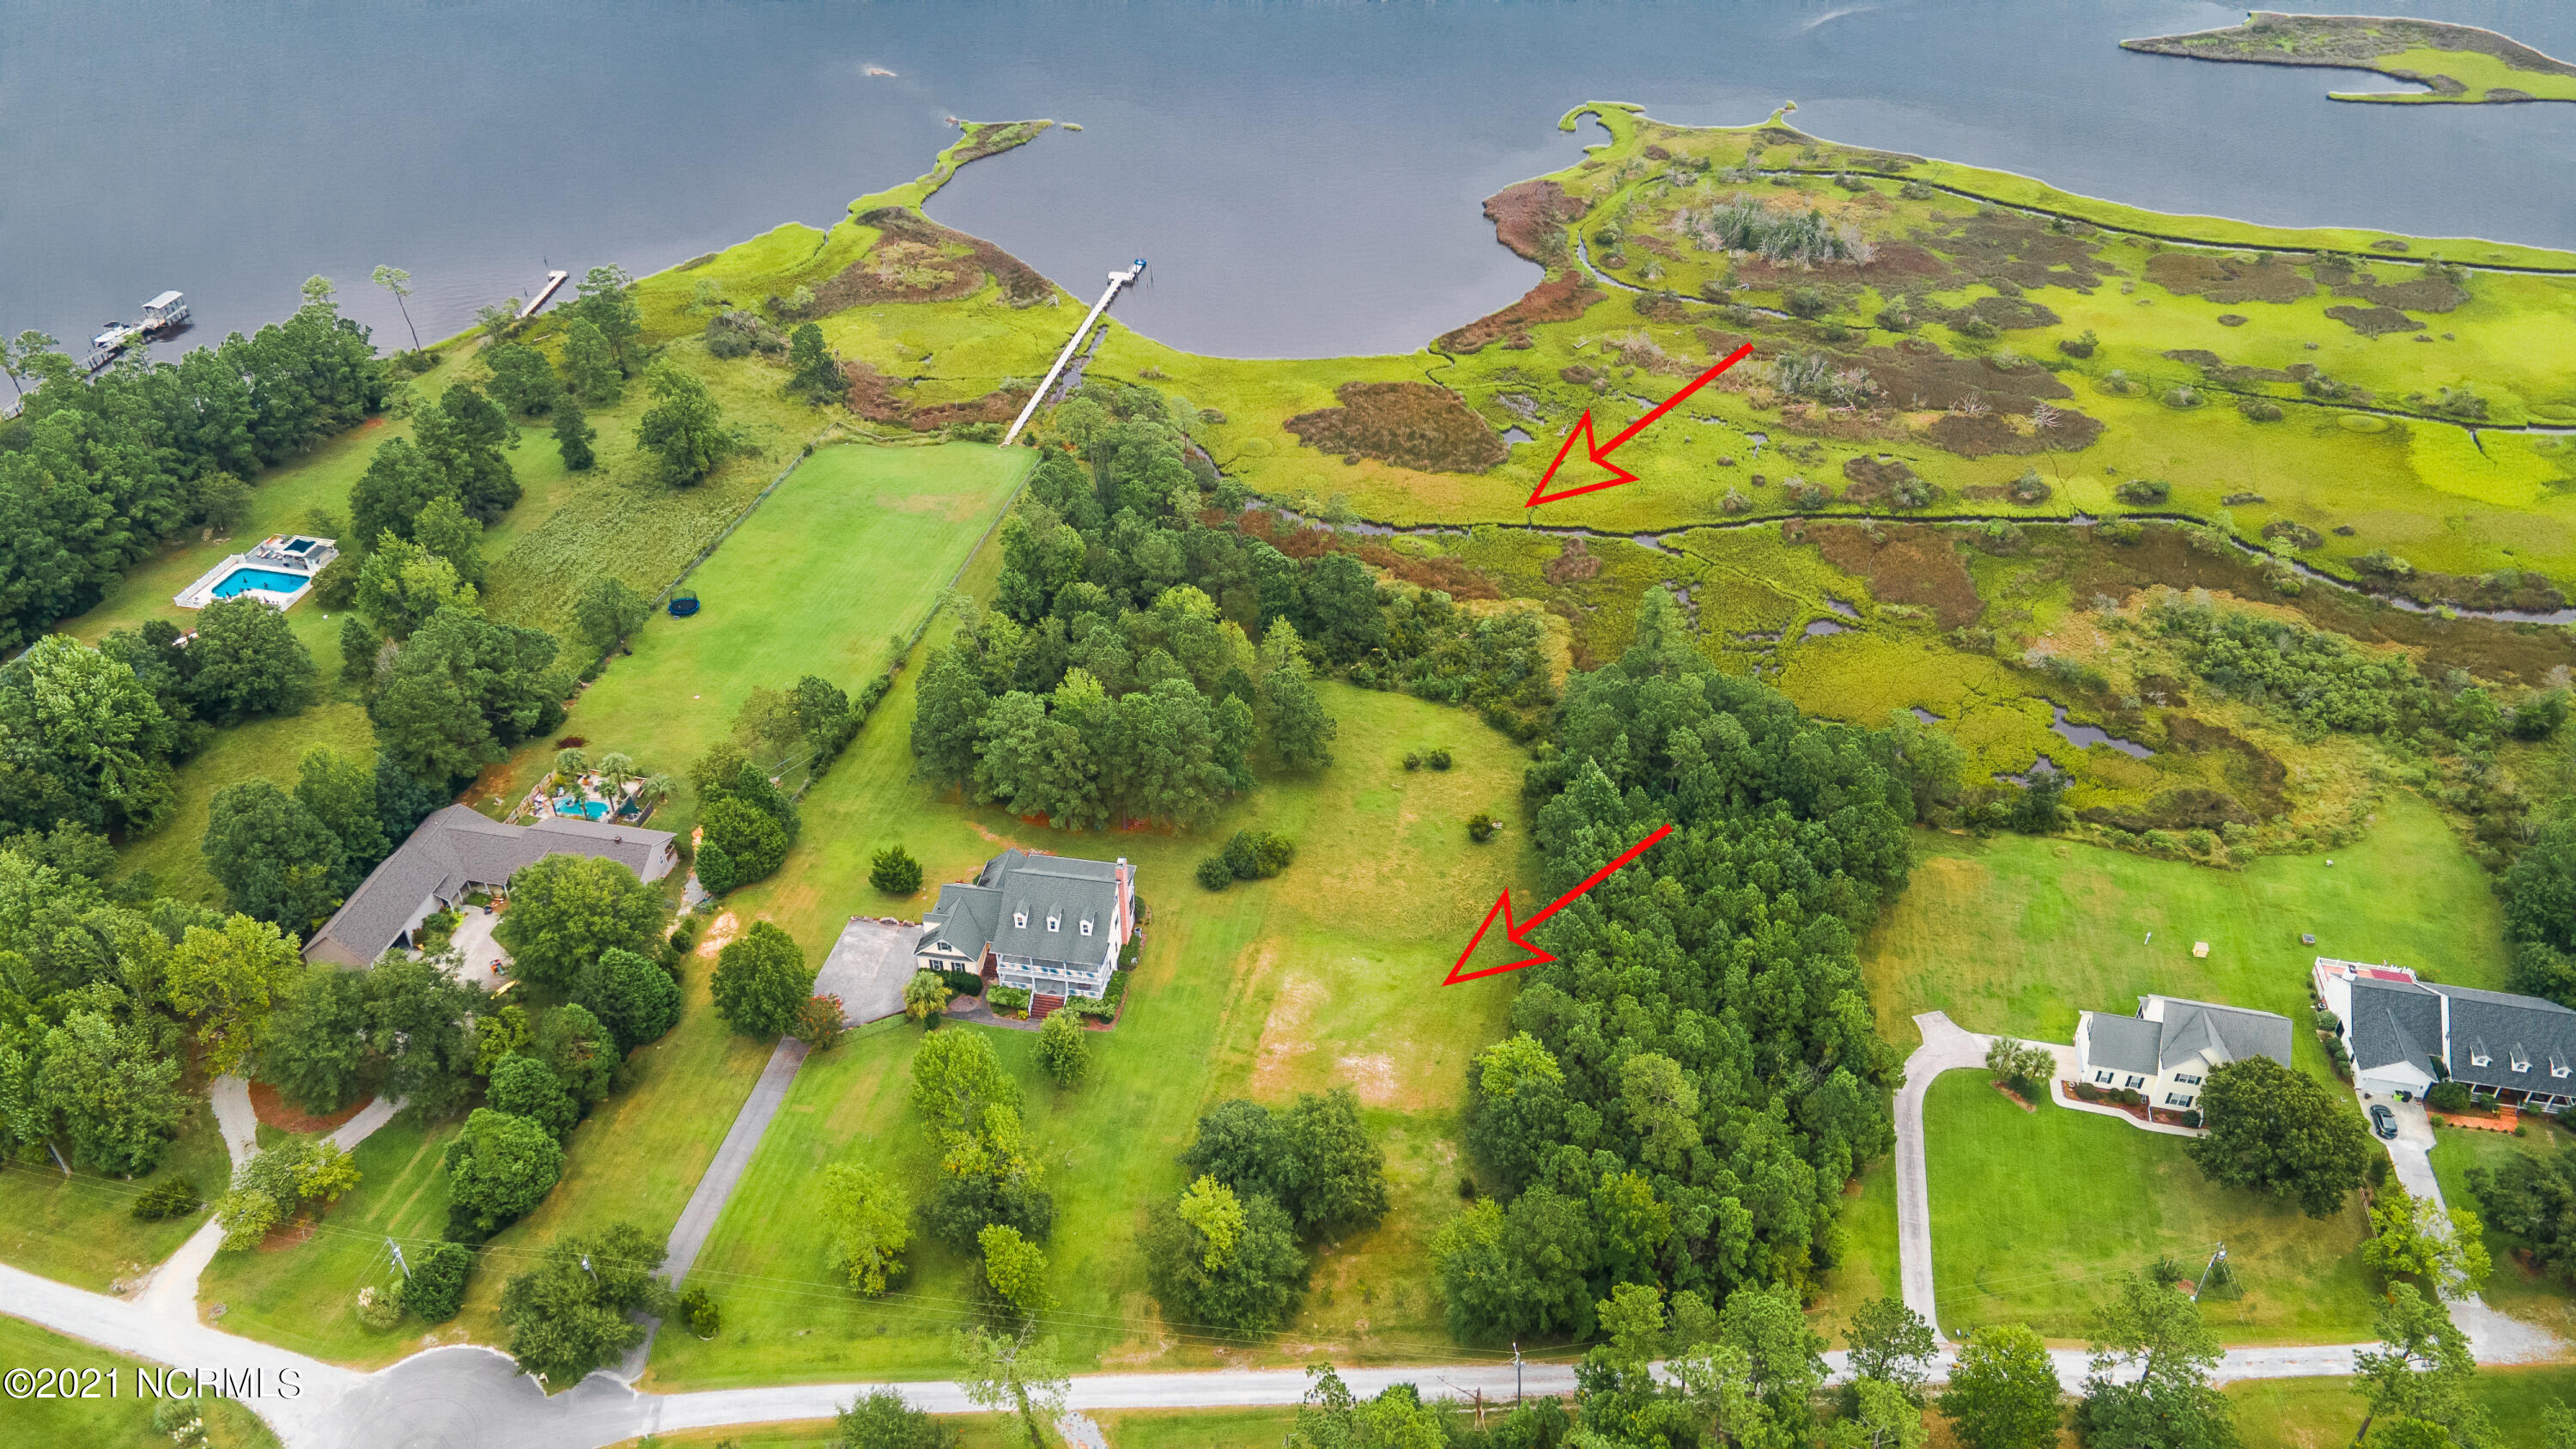 Beautiful waterfront lot providing over 3 acres of land and ready for your dream home!  Tranquil setting with panoramic views of the White Oak River and breathtaking sunsets. With interest rates staying at historic lows, NOW is the time to build your dream home and live the life you deserve! Four Bedroom septic system installed. Well water only.